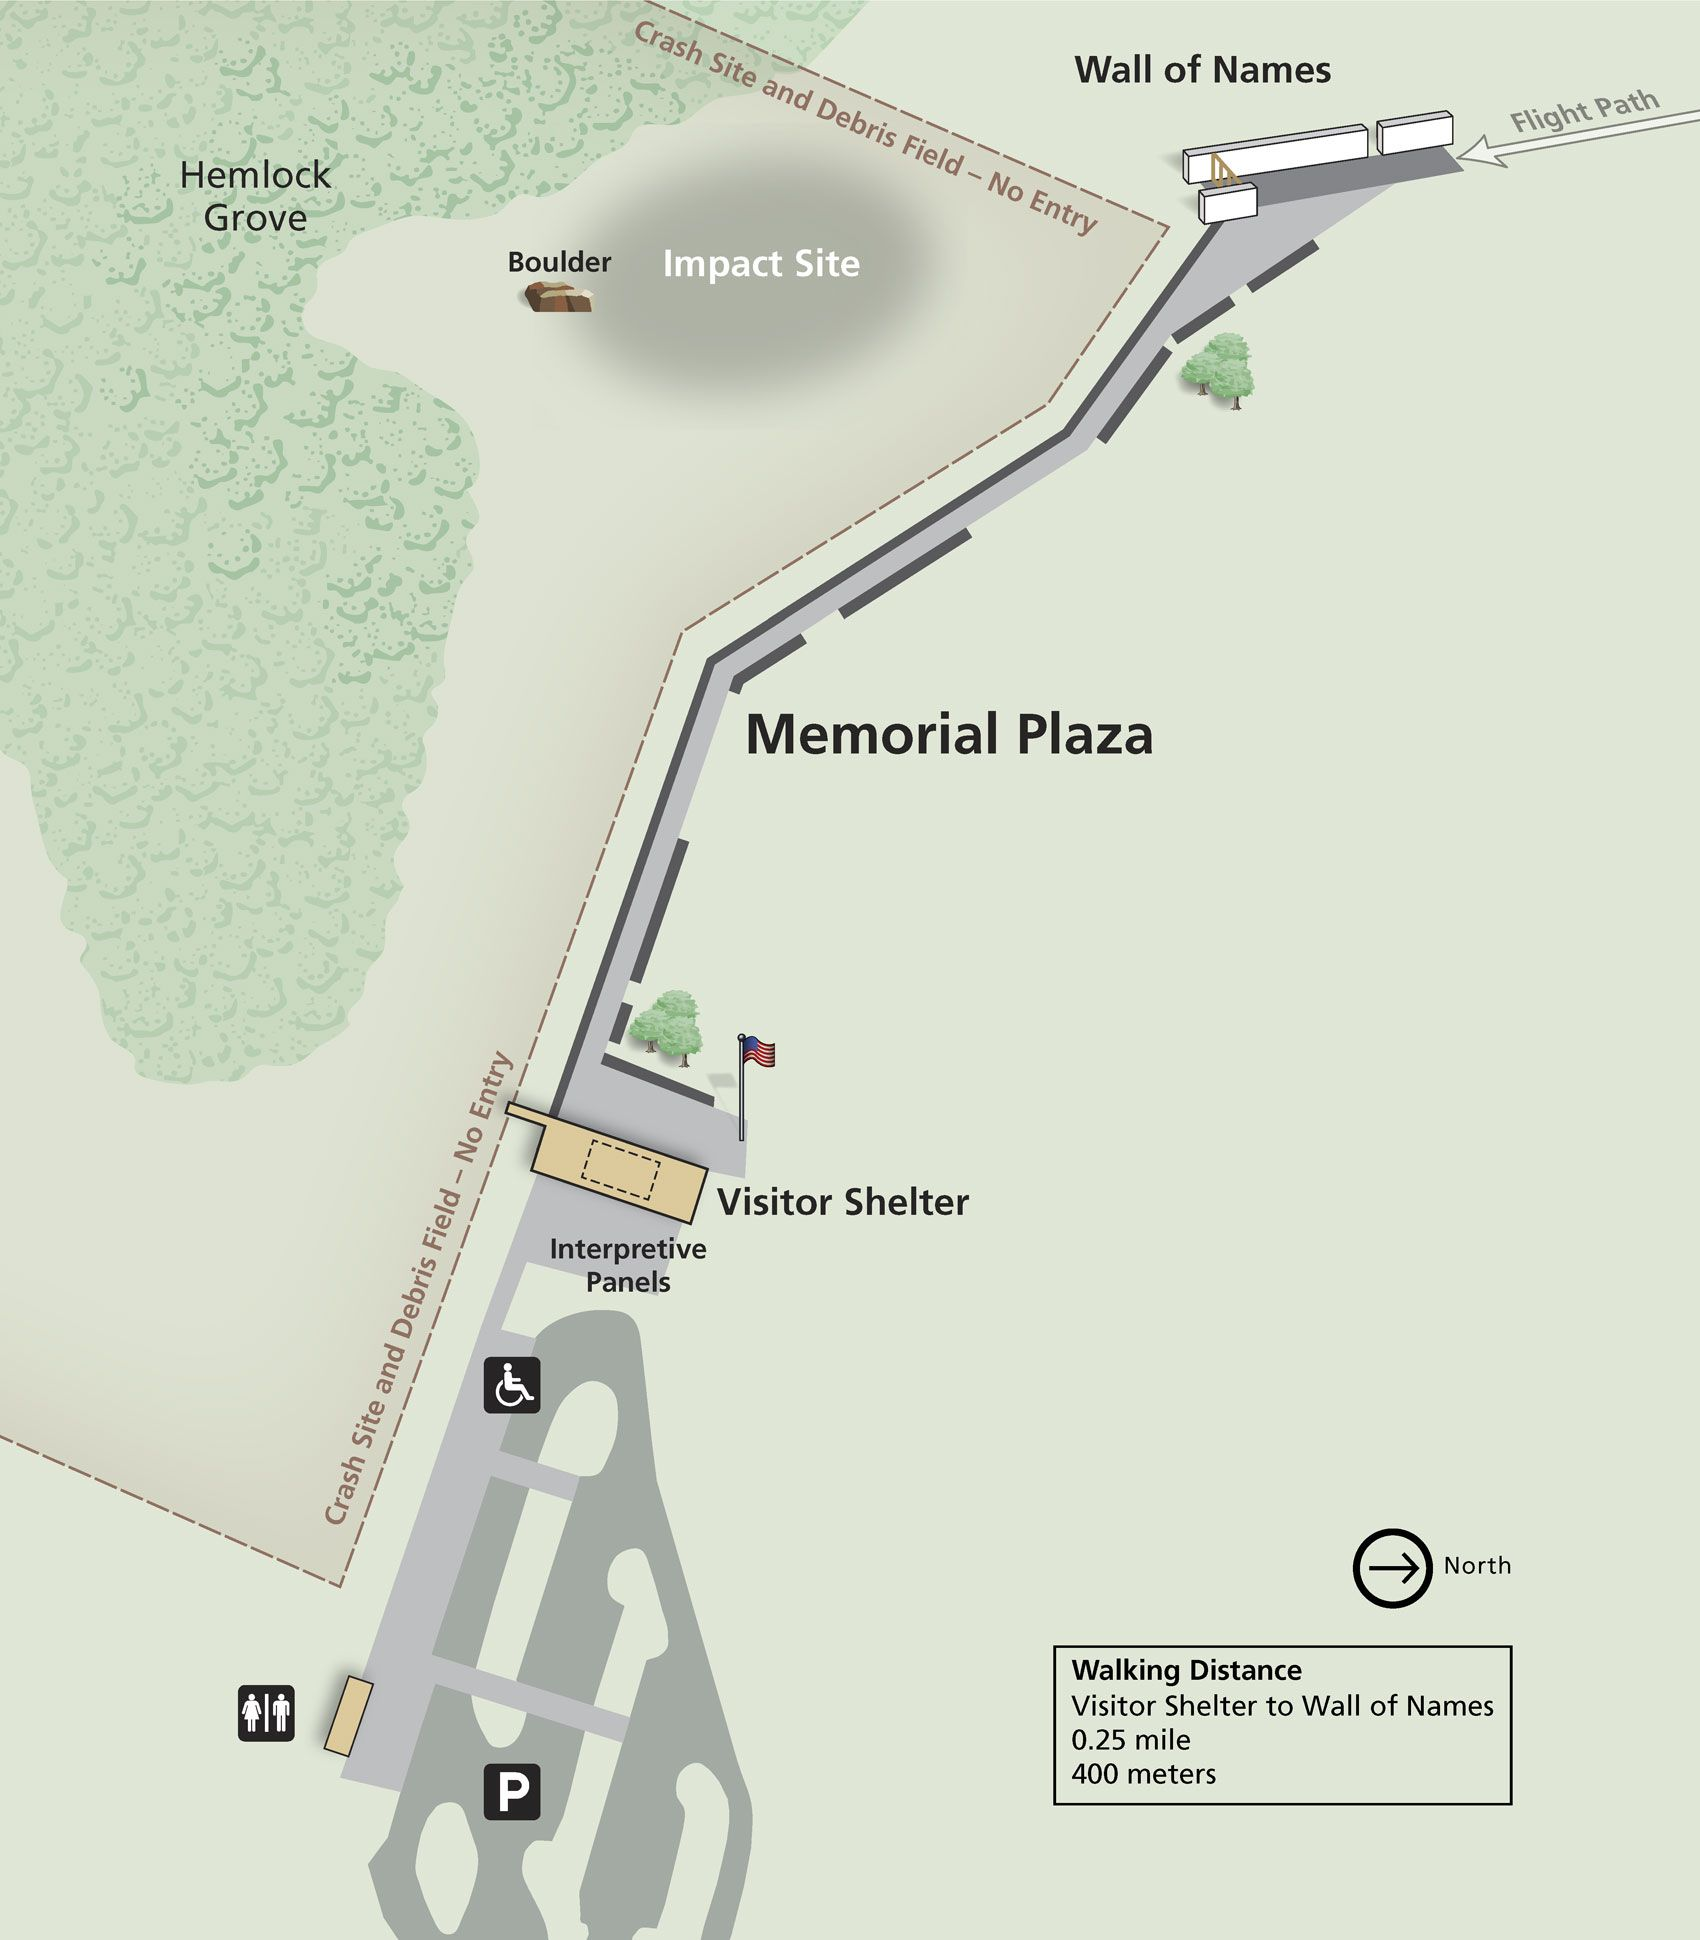 Flight 93 Memorial Plaza Map, Shanksville, Pennsylvania ... on north tower impact, world train center, world missions, twin towers impact, wtc impact,